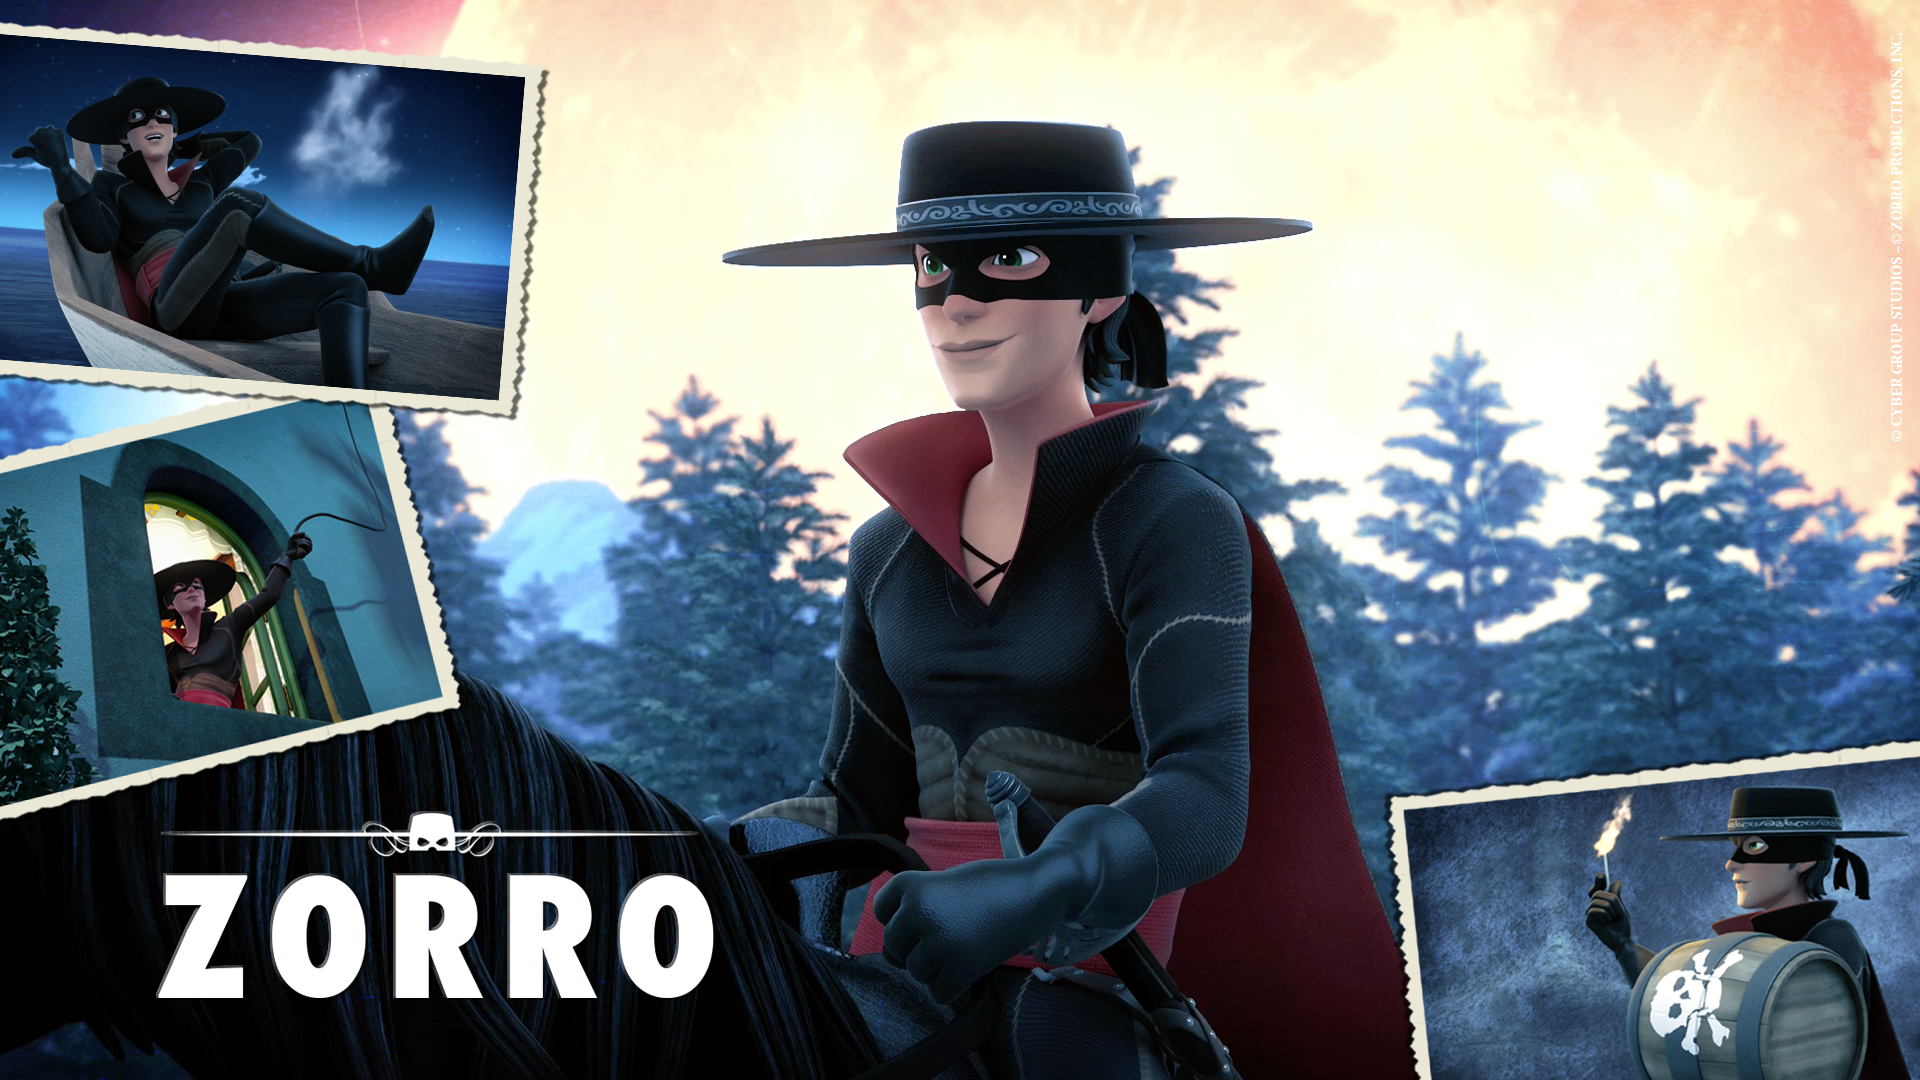 wallpaper_zorro